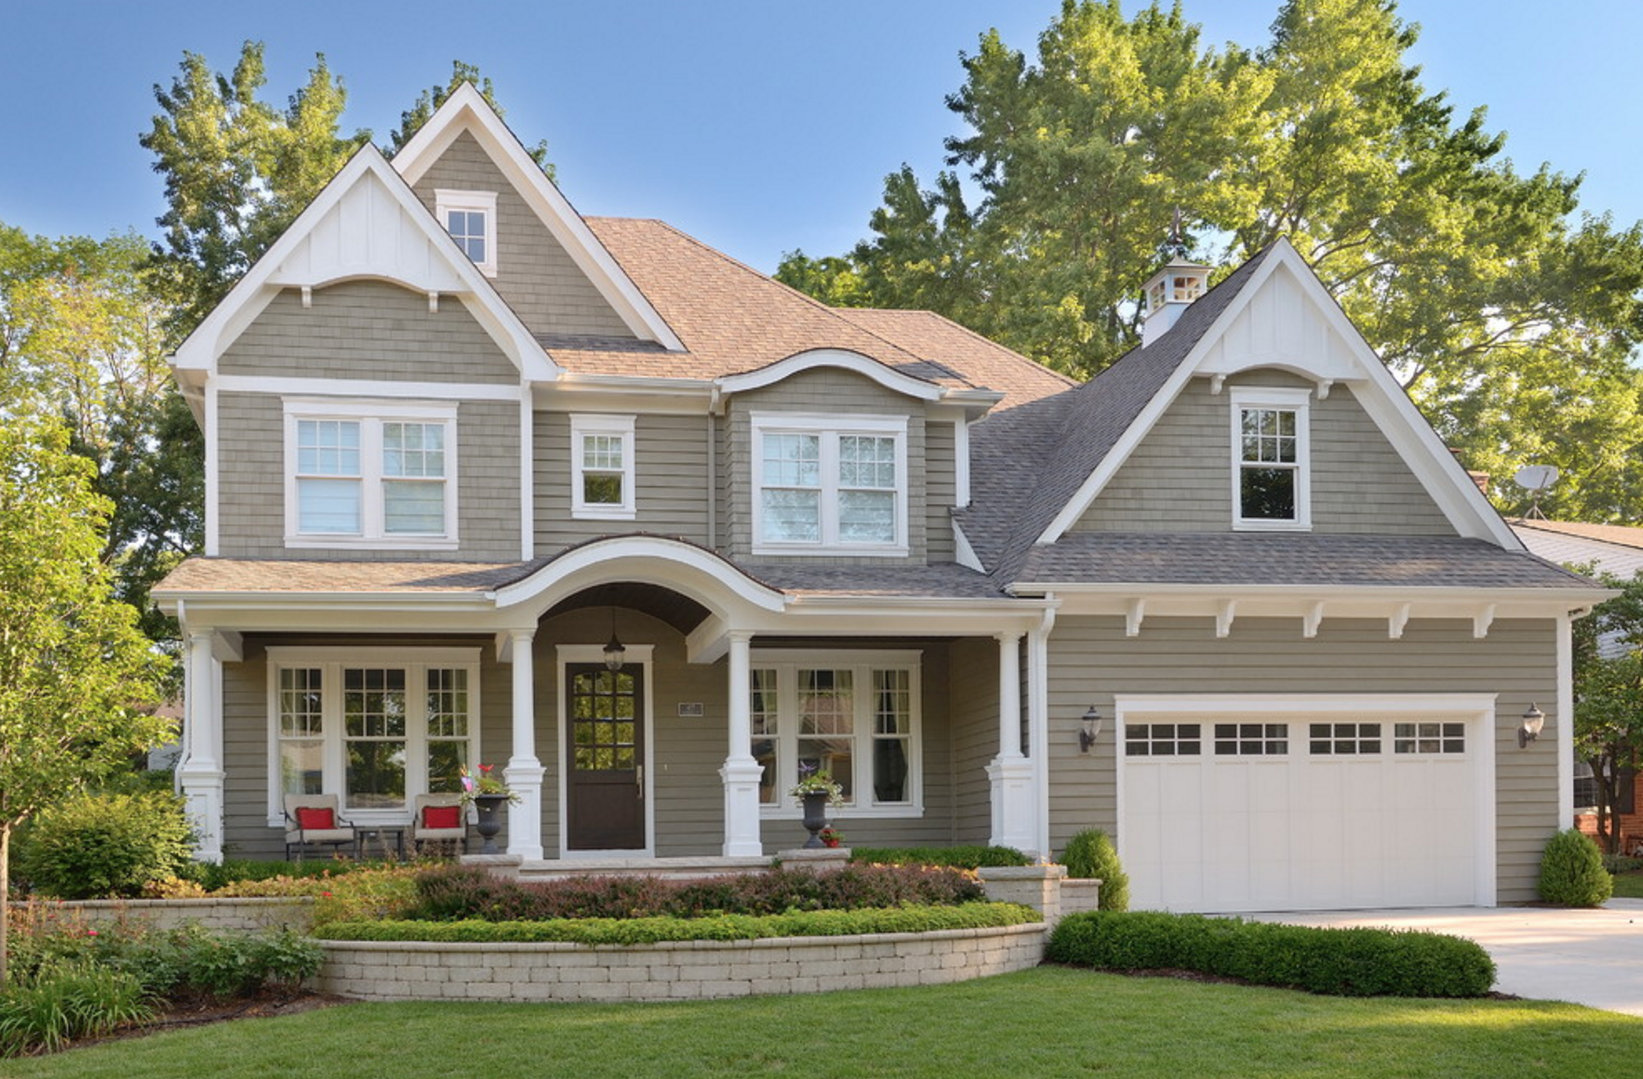 Remodelaholic exterior paint colors that add curb appeal - Benjamin moore exterior color combinations ...